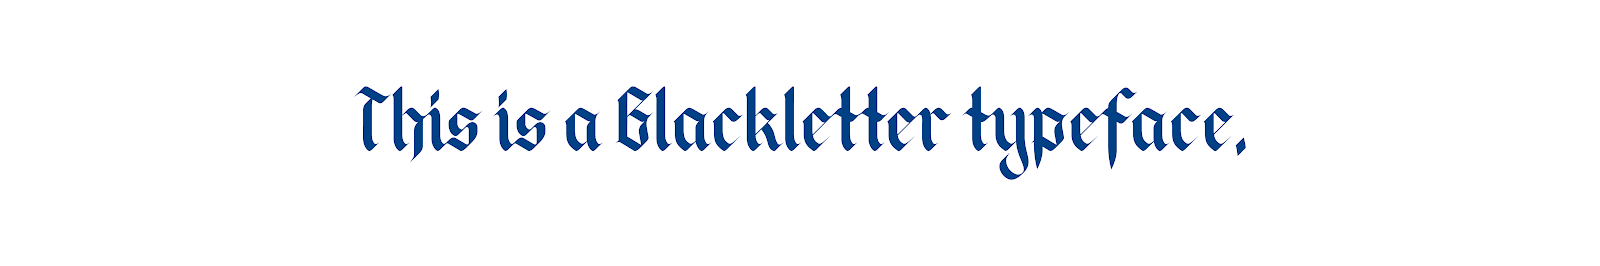 Gothic or blackletter typeface